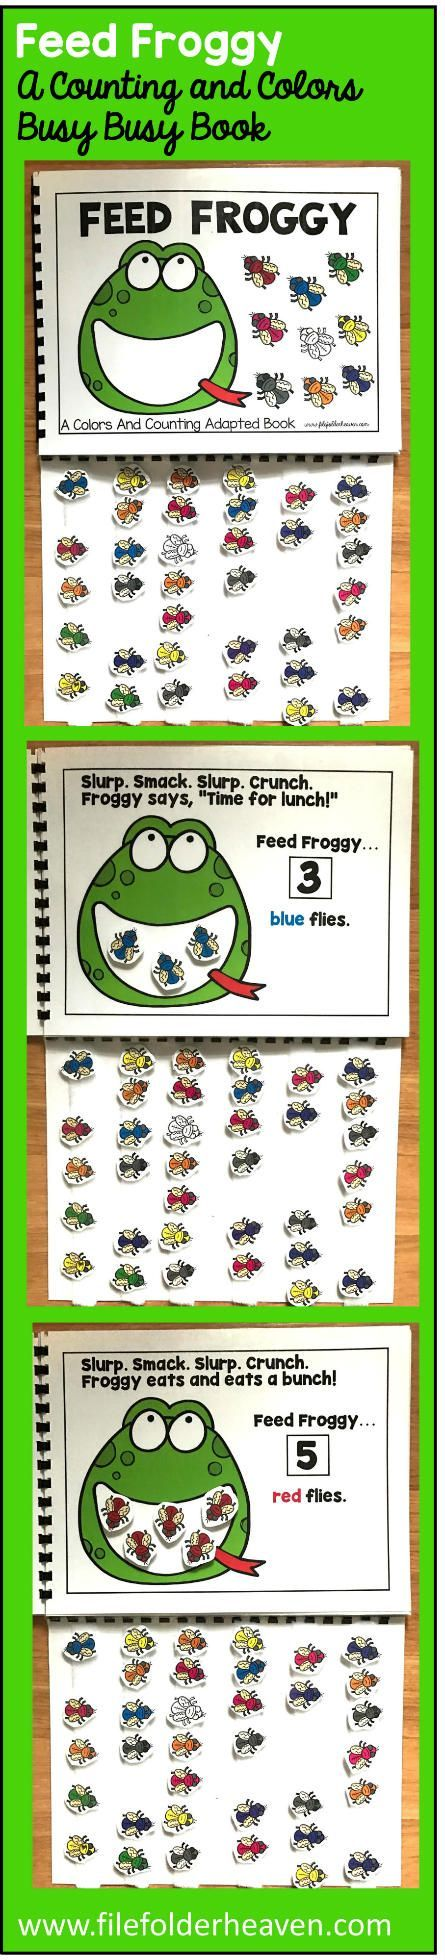 This Feed Froggy Colors and Counting Adapted Book is an adapted book that focuses on colors and counting in a fun and interactive way.  In a small group, independent center or independent work station. A teacher or student reads through the book and feeds the animal or critter, the correct number and color the food on each page.  Sample text: